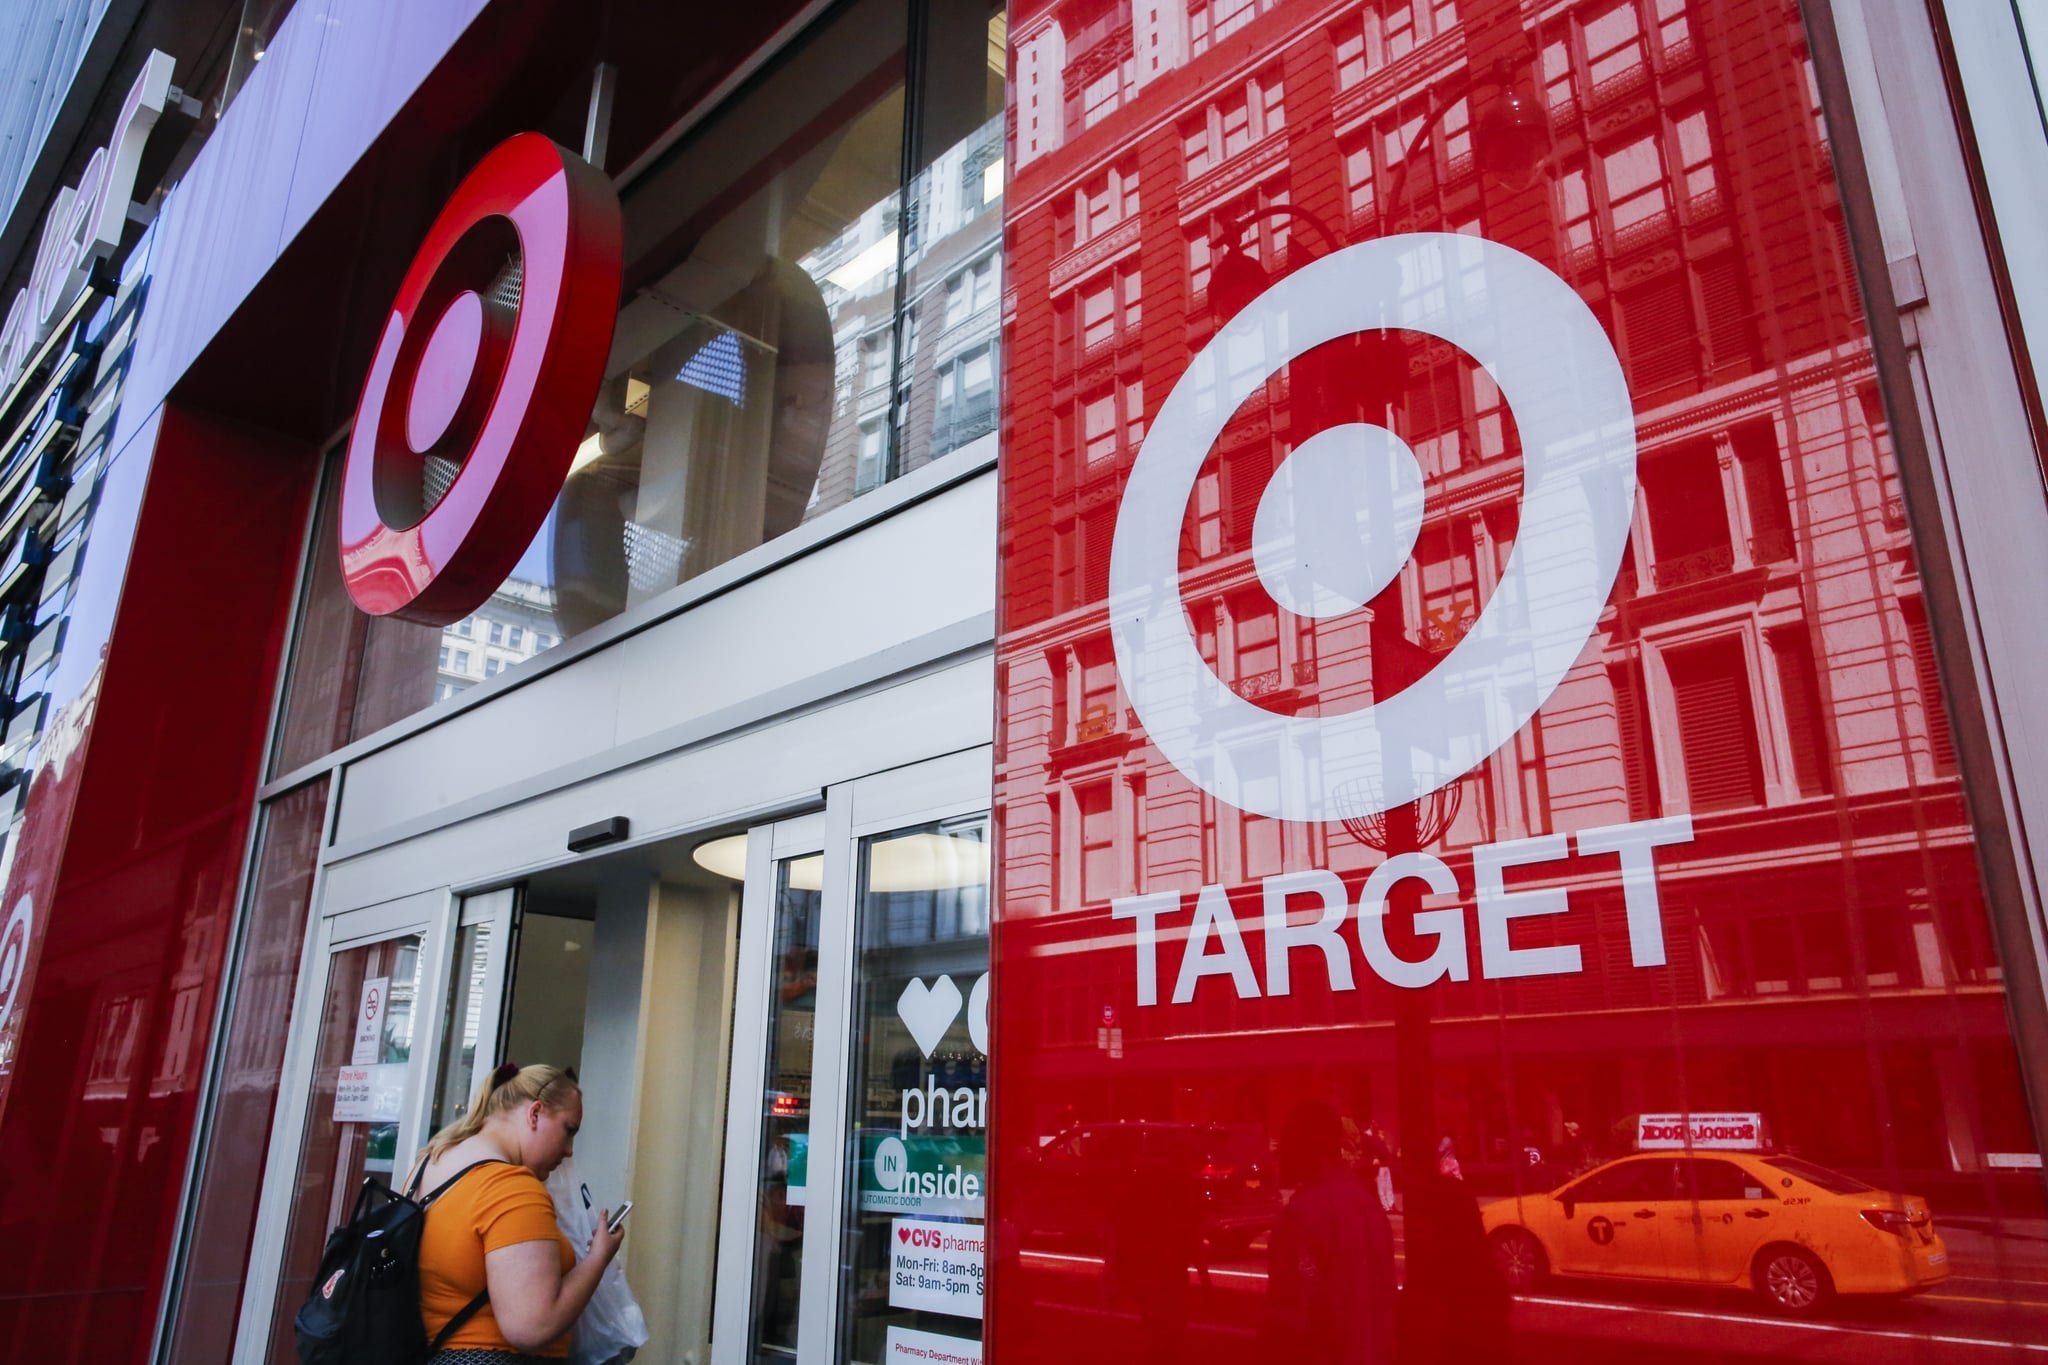 NEW YORK, NY - MAY 21:  A woman enters Target branch store at middle Manhattan on May 21, 2018 in New York, Target is expected on May 23 to report first-quarter earnings per share of $1.38, up from $1.21 in the same quarter a year ago. Target Corporation is the second-largest discount store retailer in the United States.(Photo by Eduardo Munoz Alvarez/VIEWpress/Corbis via Getty Images)